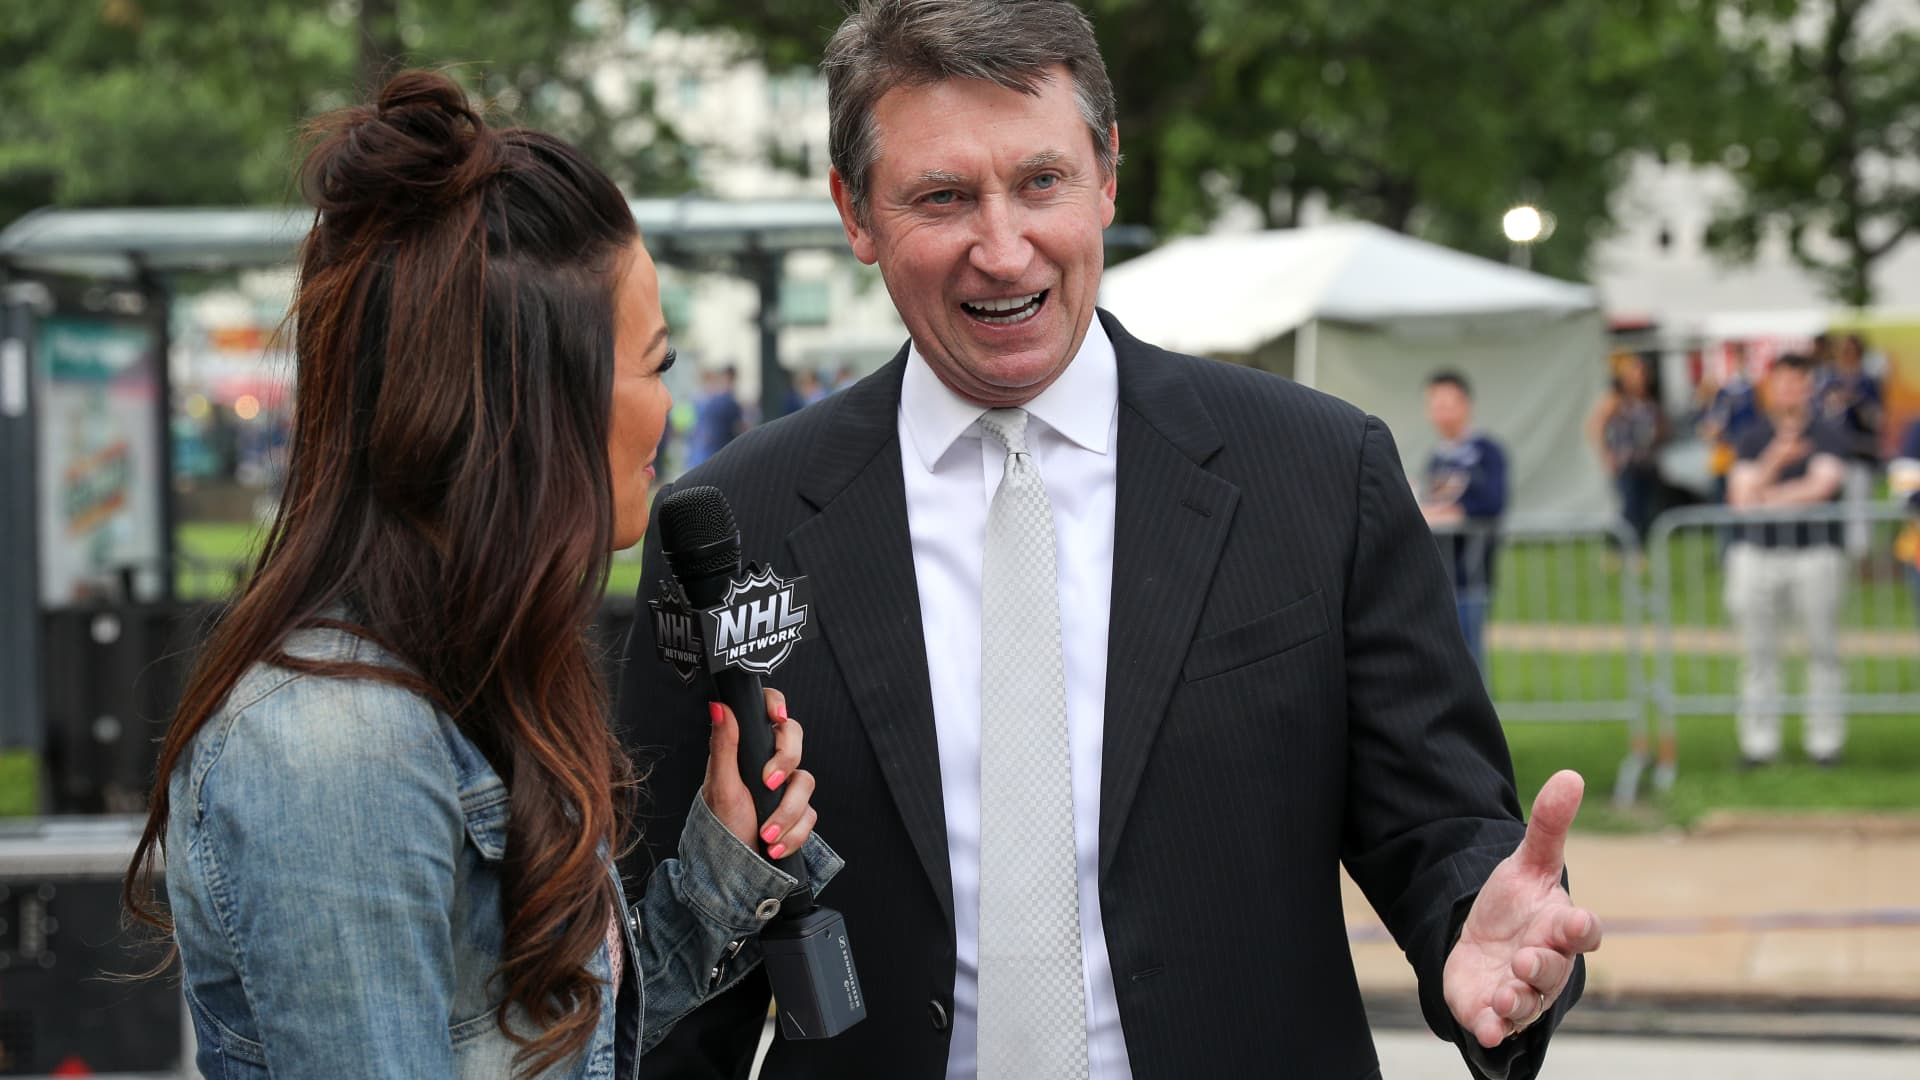 Jamie Redmond interviews Wayne Gretzky before Game Four of the 2019 NHL Stanley Cup Final between the Boston Bruins and the St. Louis Blues at Enterprise Center on June 03, 2019 in St Louis, Missouri.